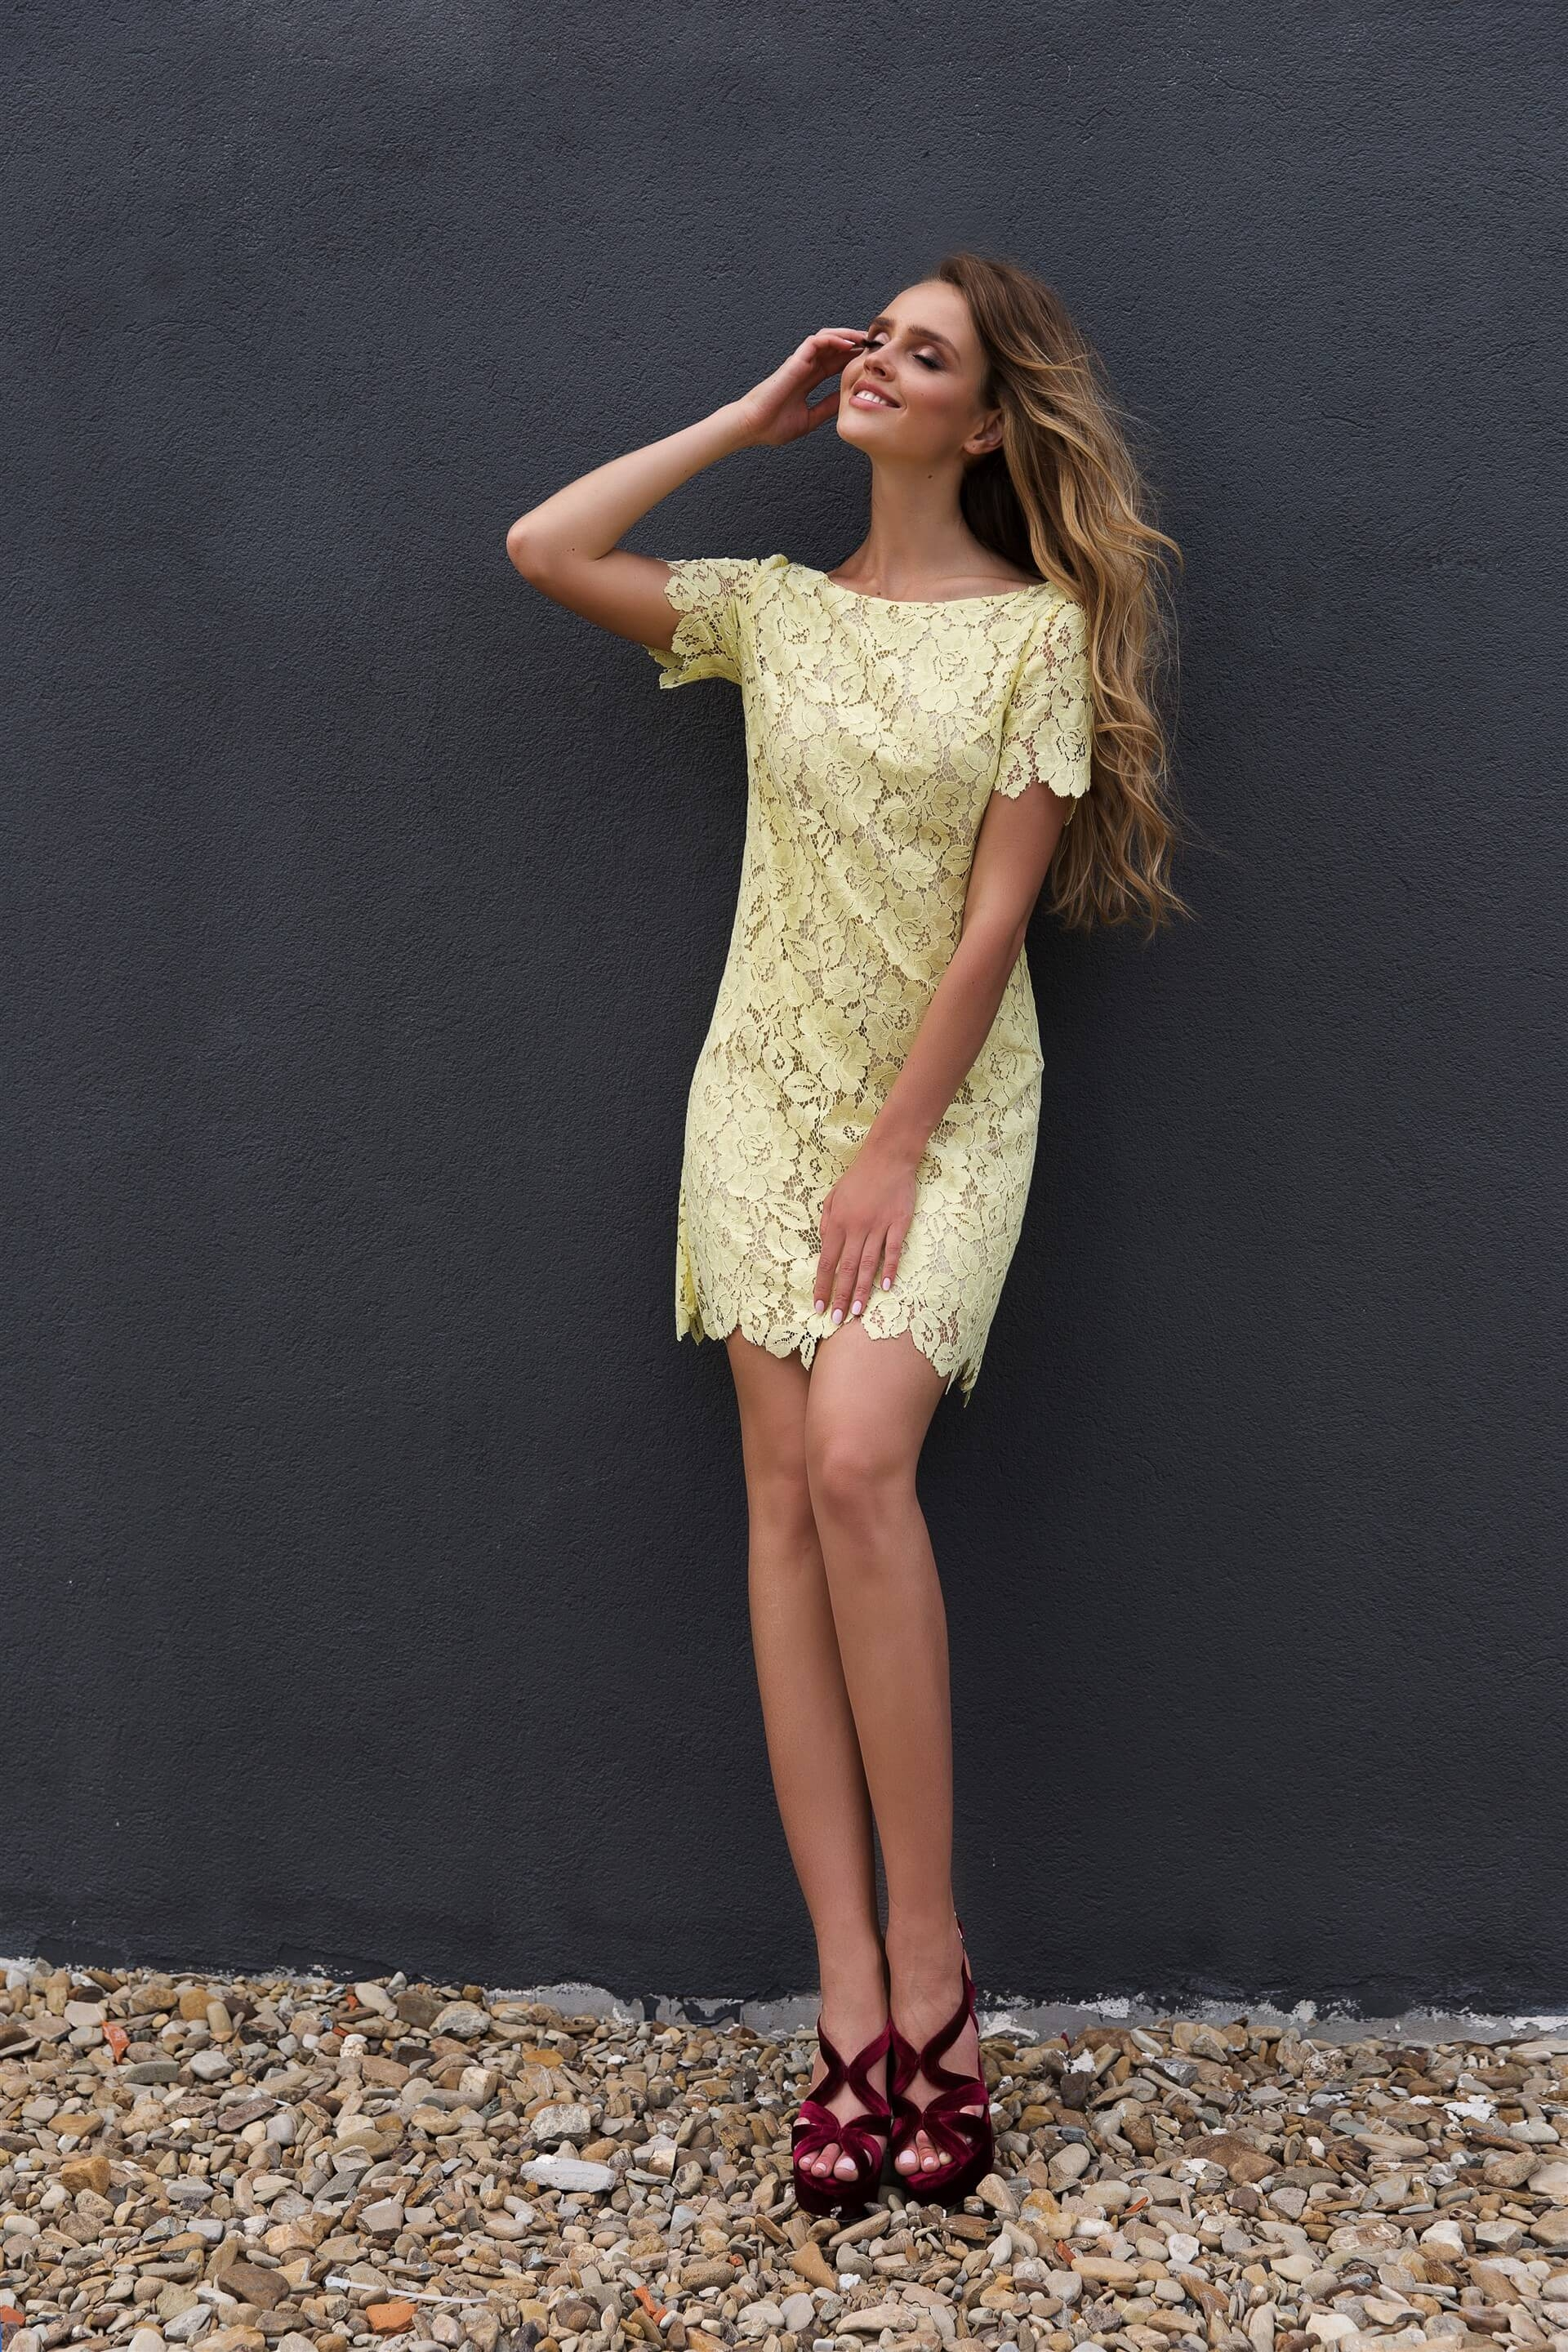 Coctail dress Luisa buy, Coctail dress Luisa